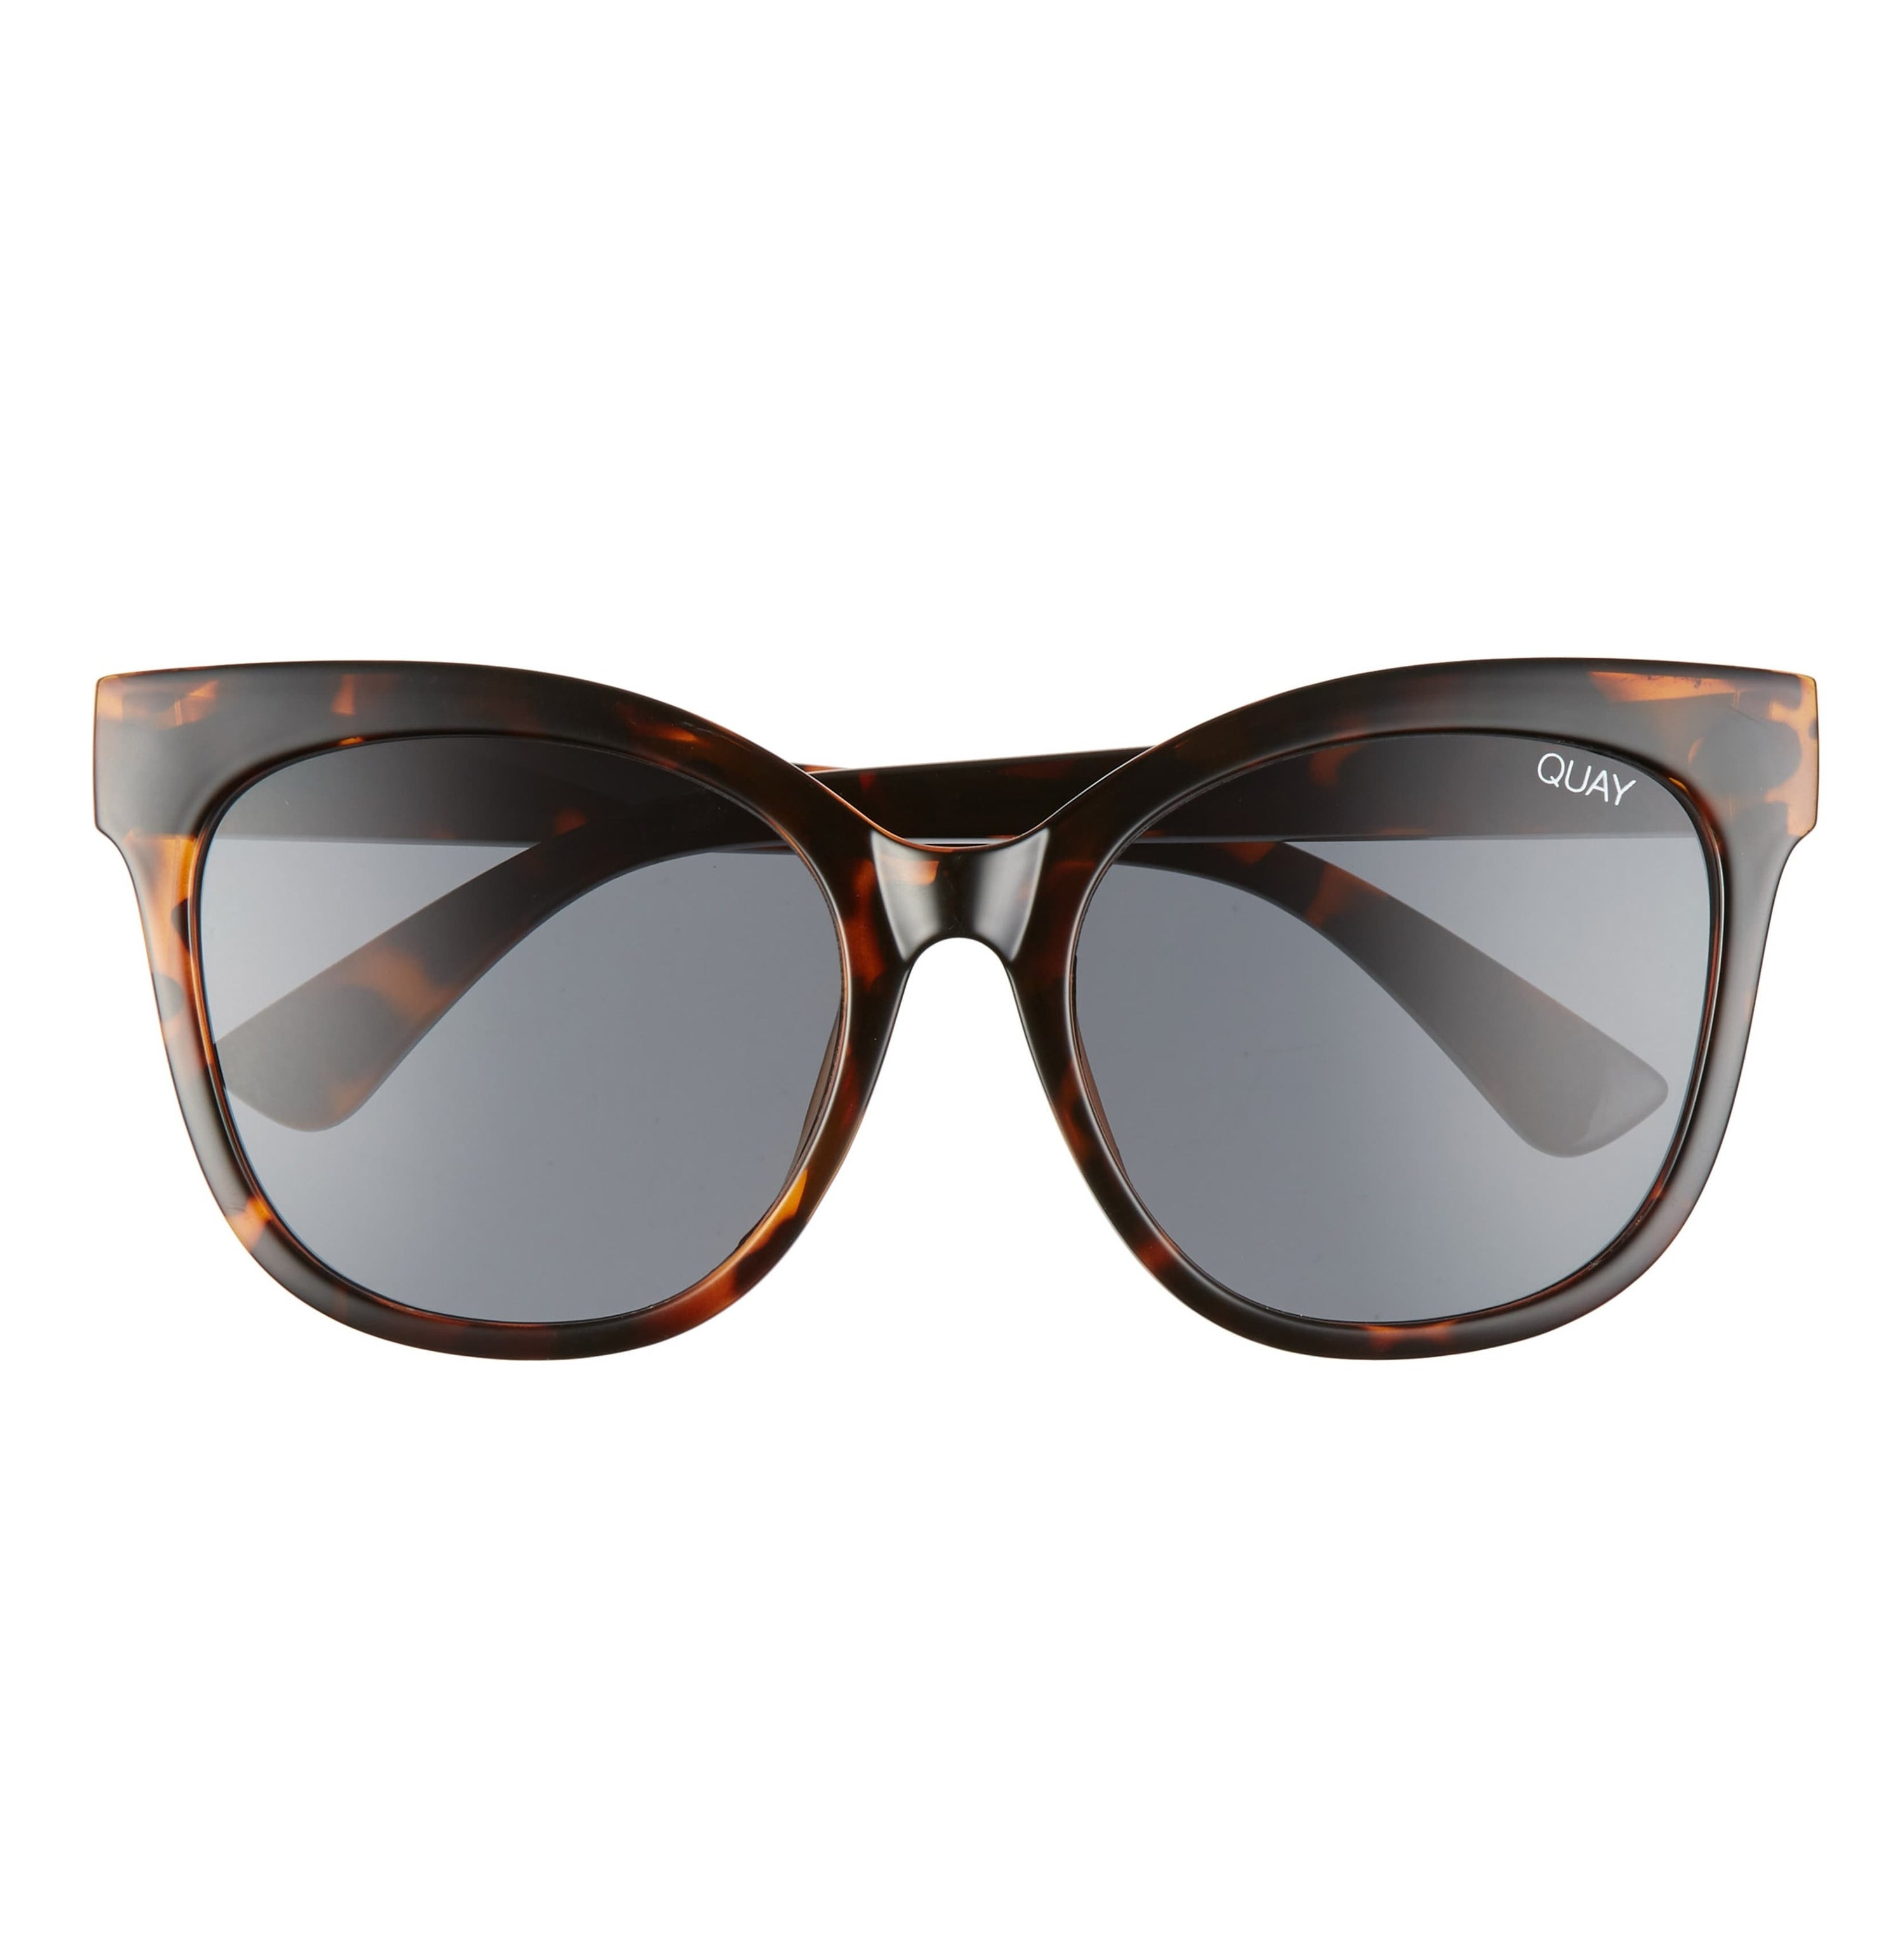 tortoise shell cat-eye sunglasses